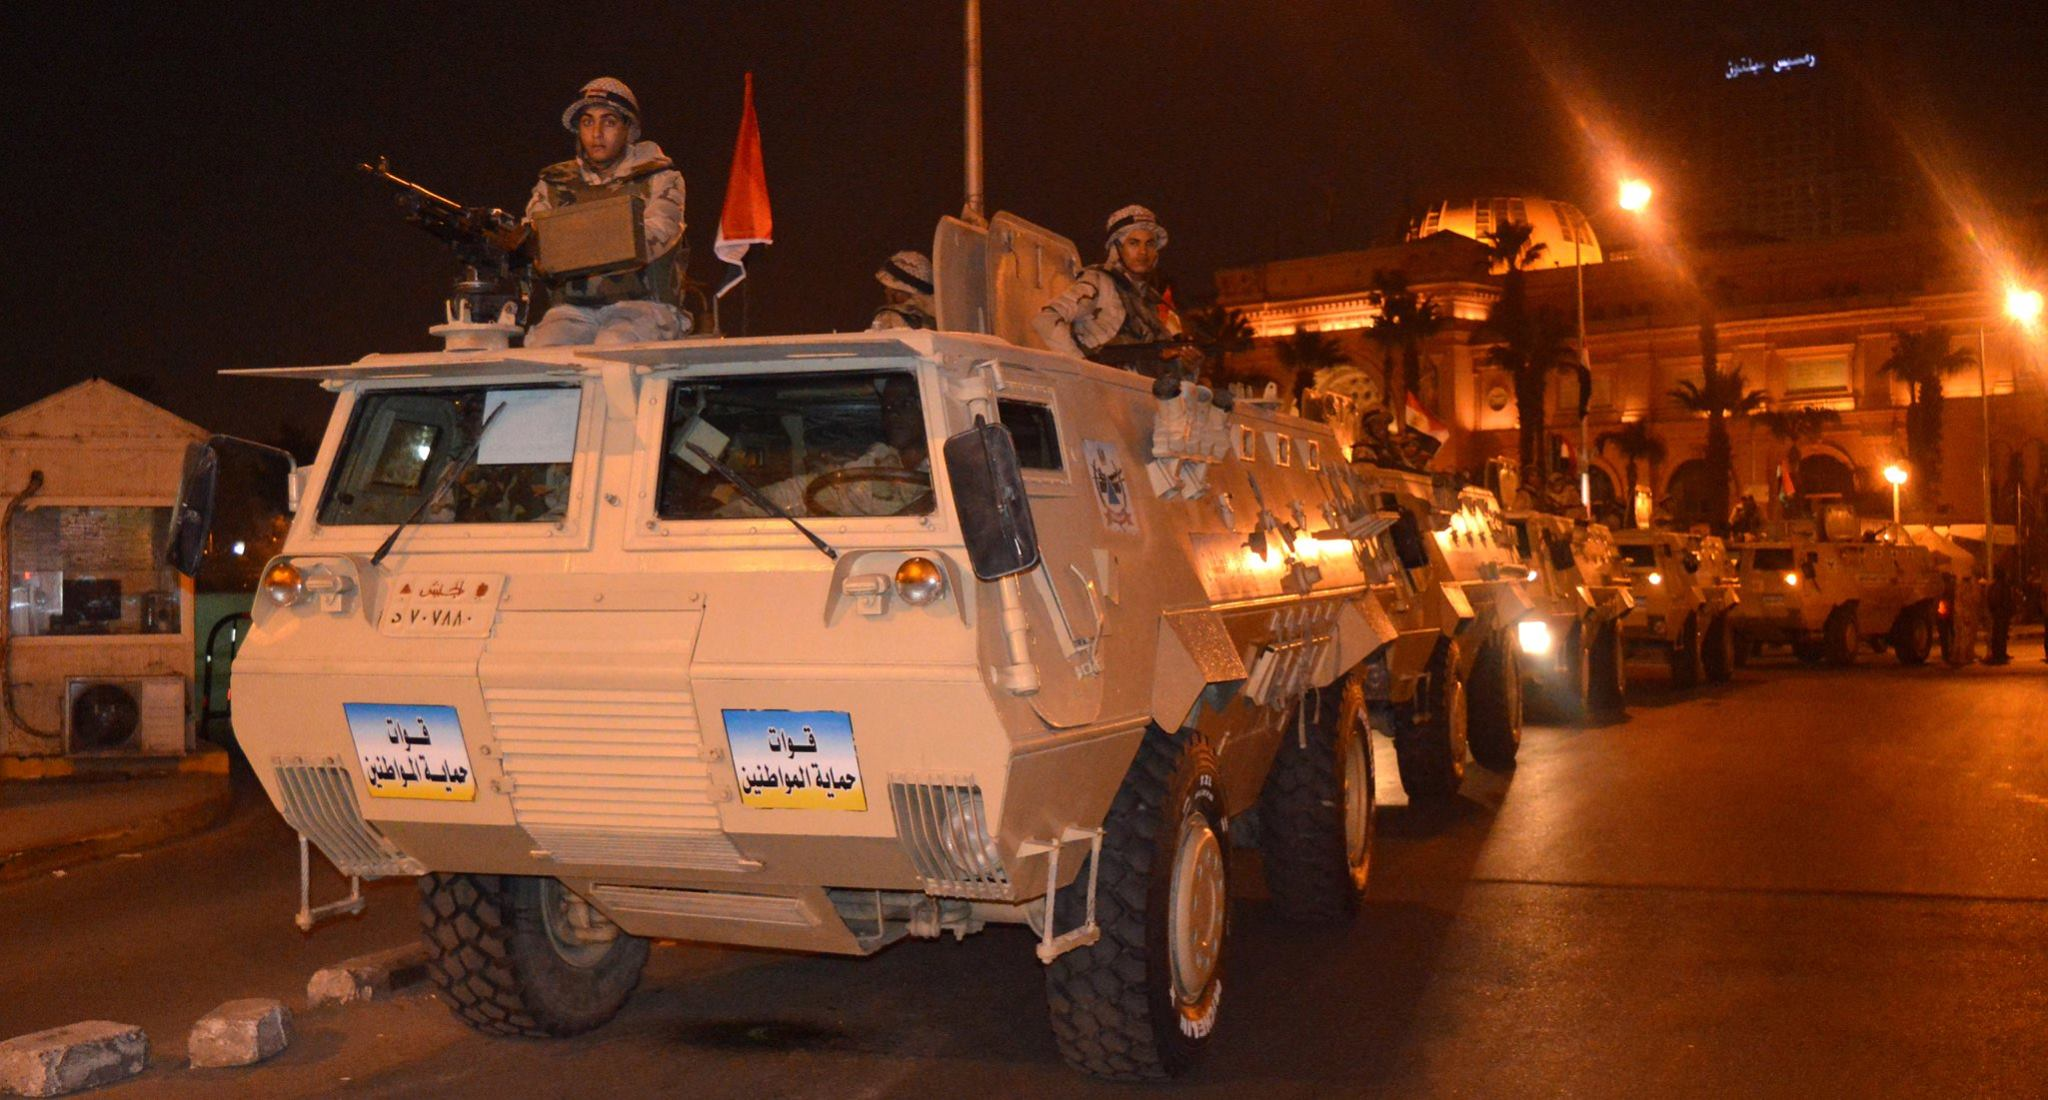 Egyptian military forces at Tahrir Square (photo provided by Military)